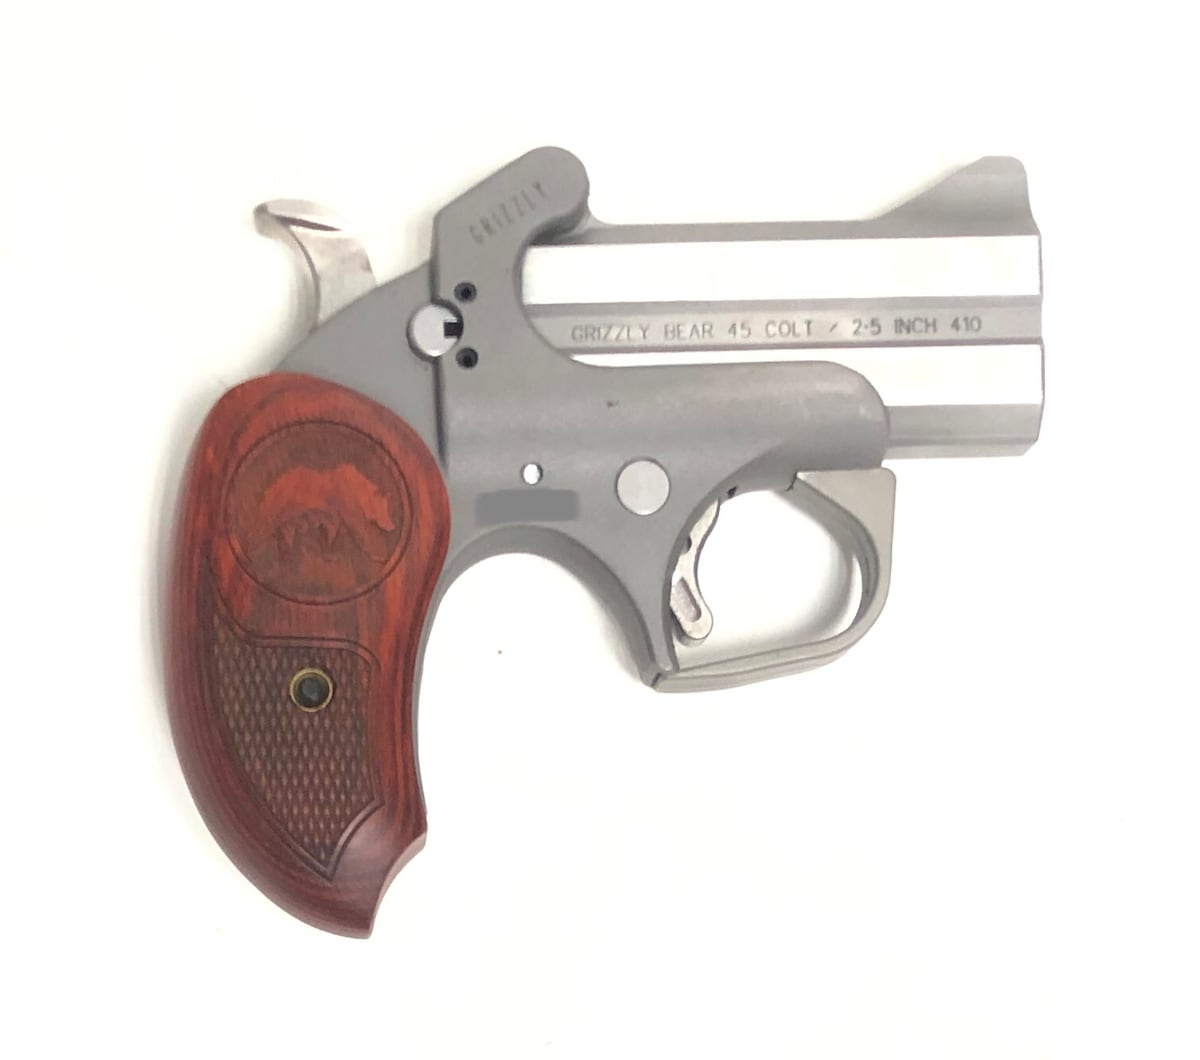 BOND ARMS Grizzly - BAGR-45/410